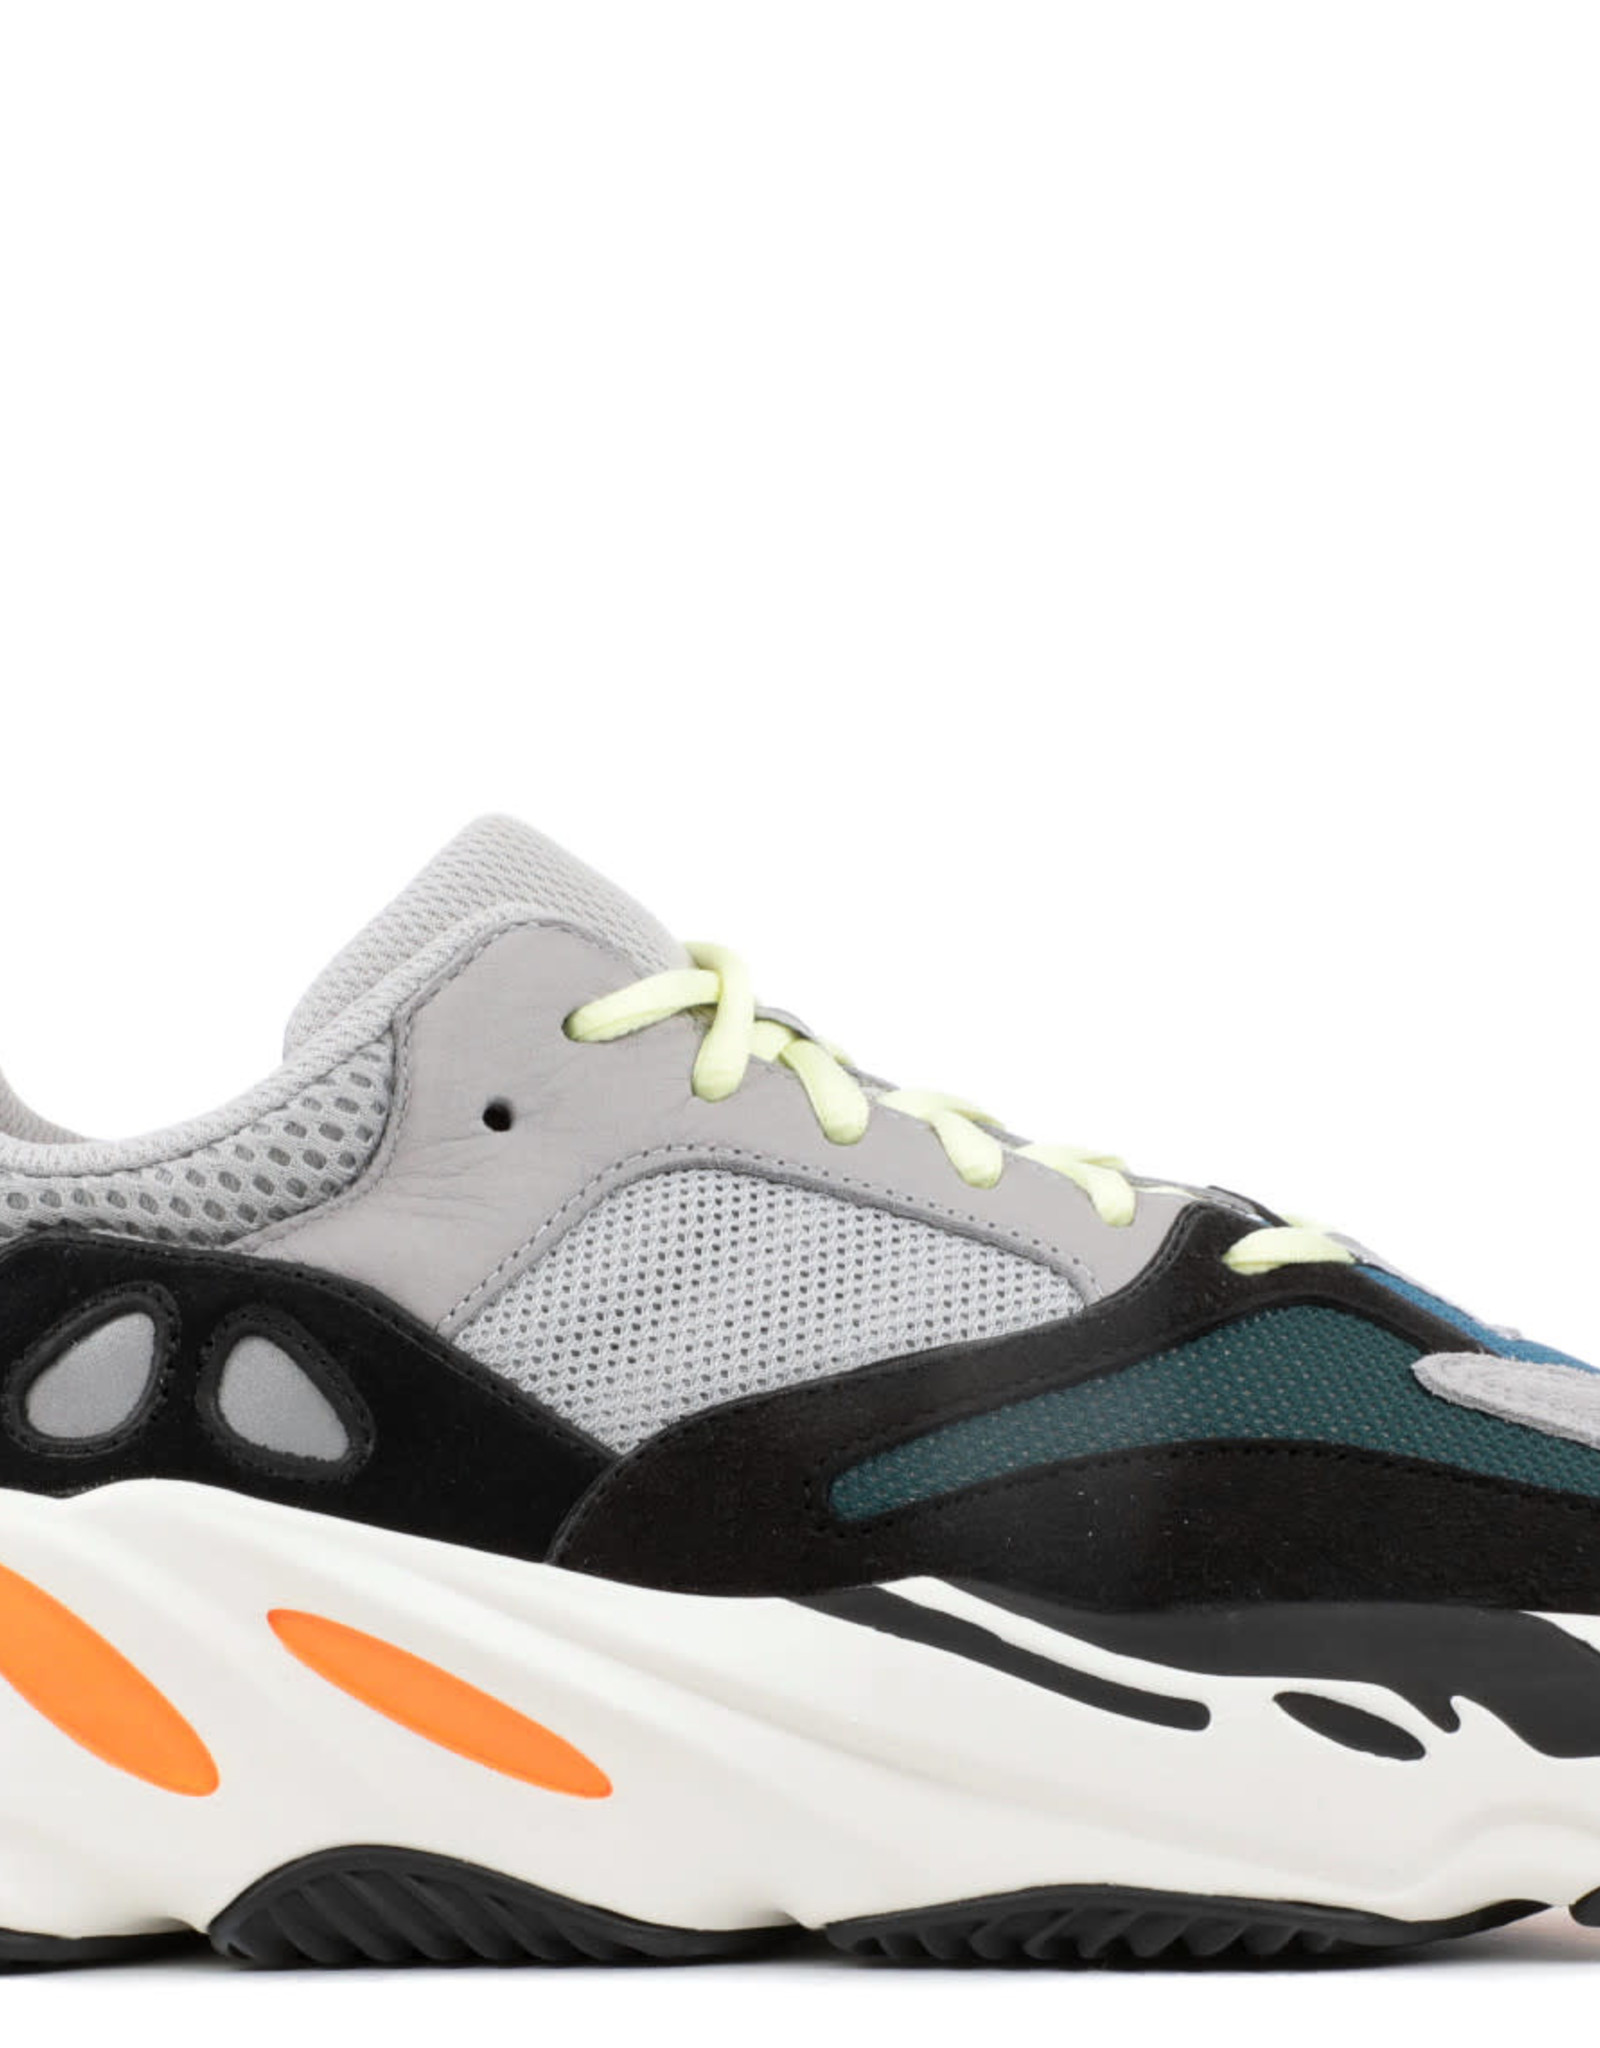 YEEZY adidas Yeezy Boost 700 Wave Runner Solid Grey